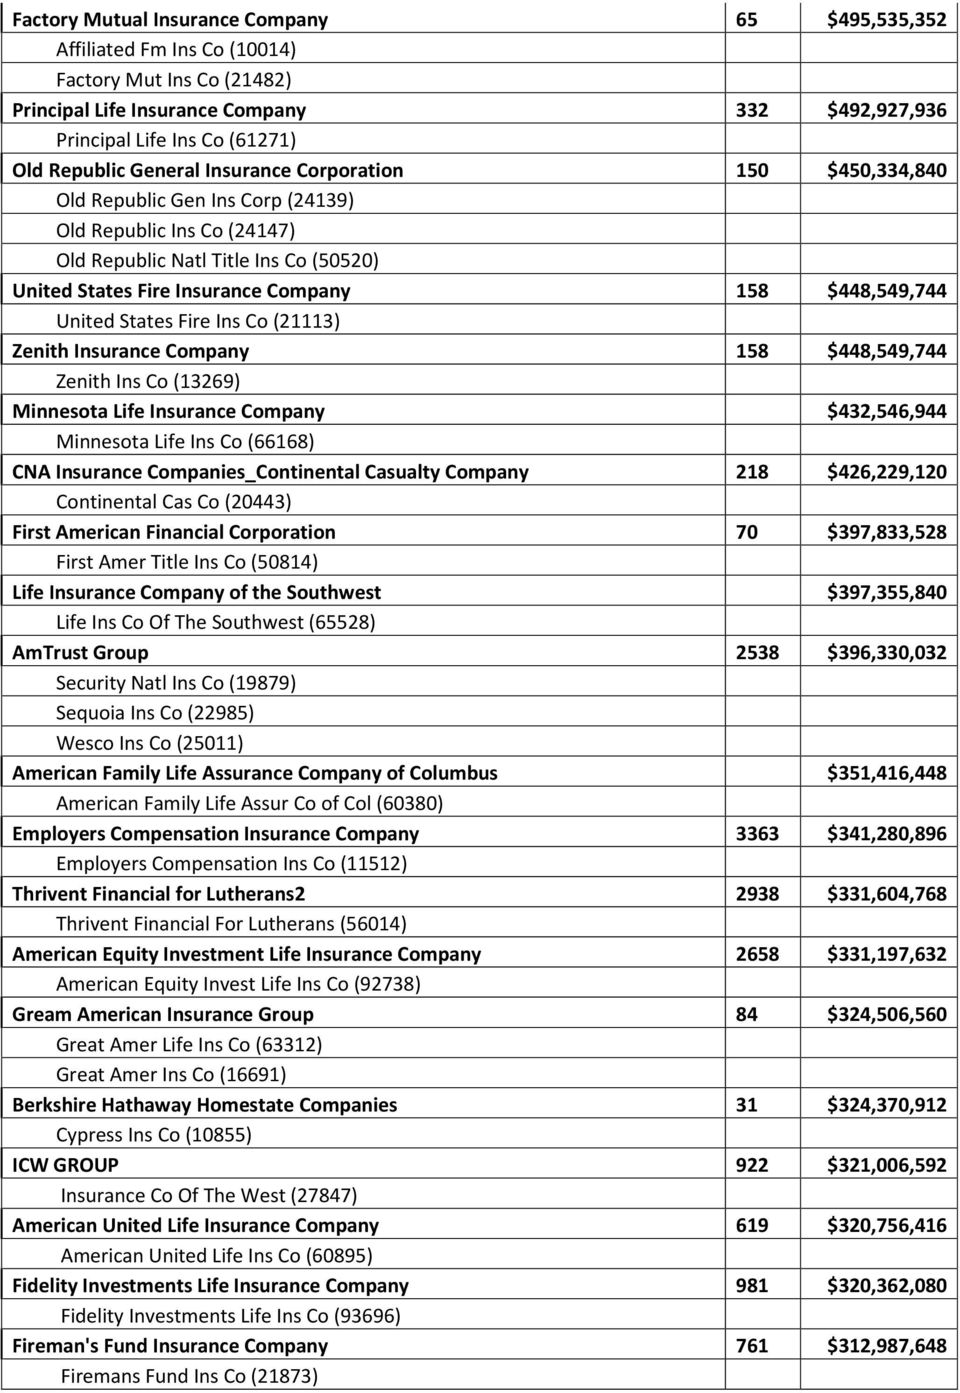 $448,549,744 United States Fire Ins Co (21113) Zenith Insurance Company 158 $448,549,744 Zenith Ins Co (13269) Minnesota Life Insurance Company $432,546,944 Minnesota Life Ins Co (66168) CNA